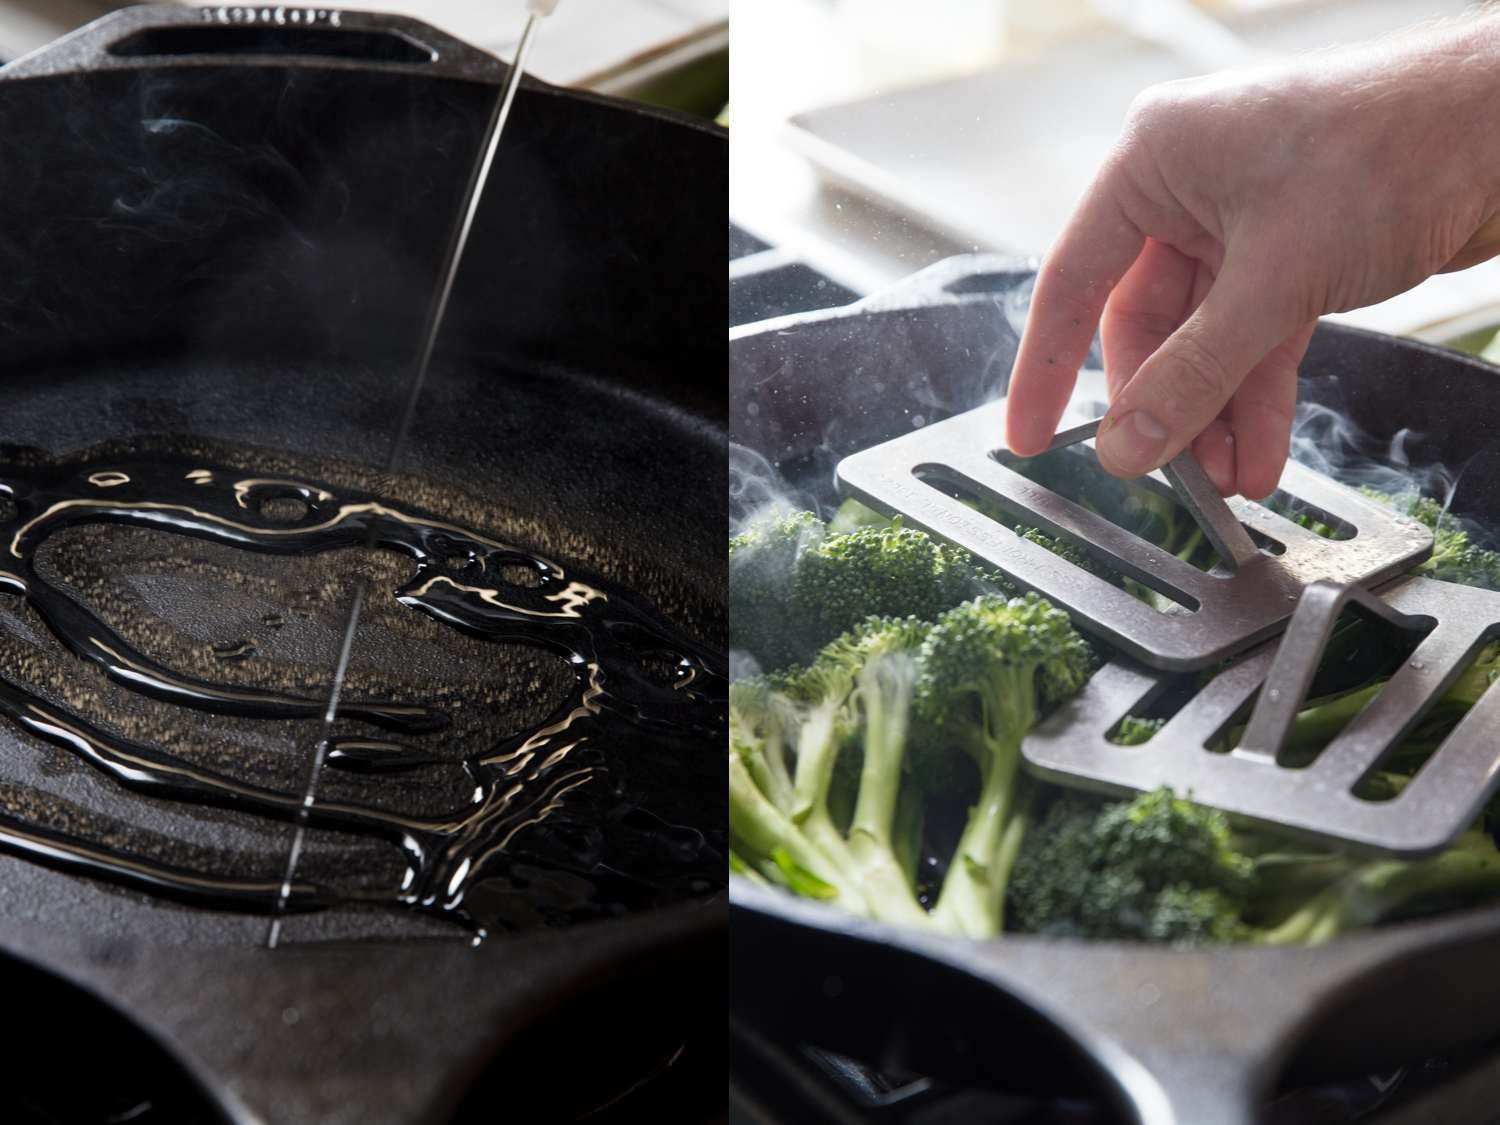 Process shots of cooking and weighing down broccoli in a cast iron skillet.